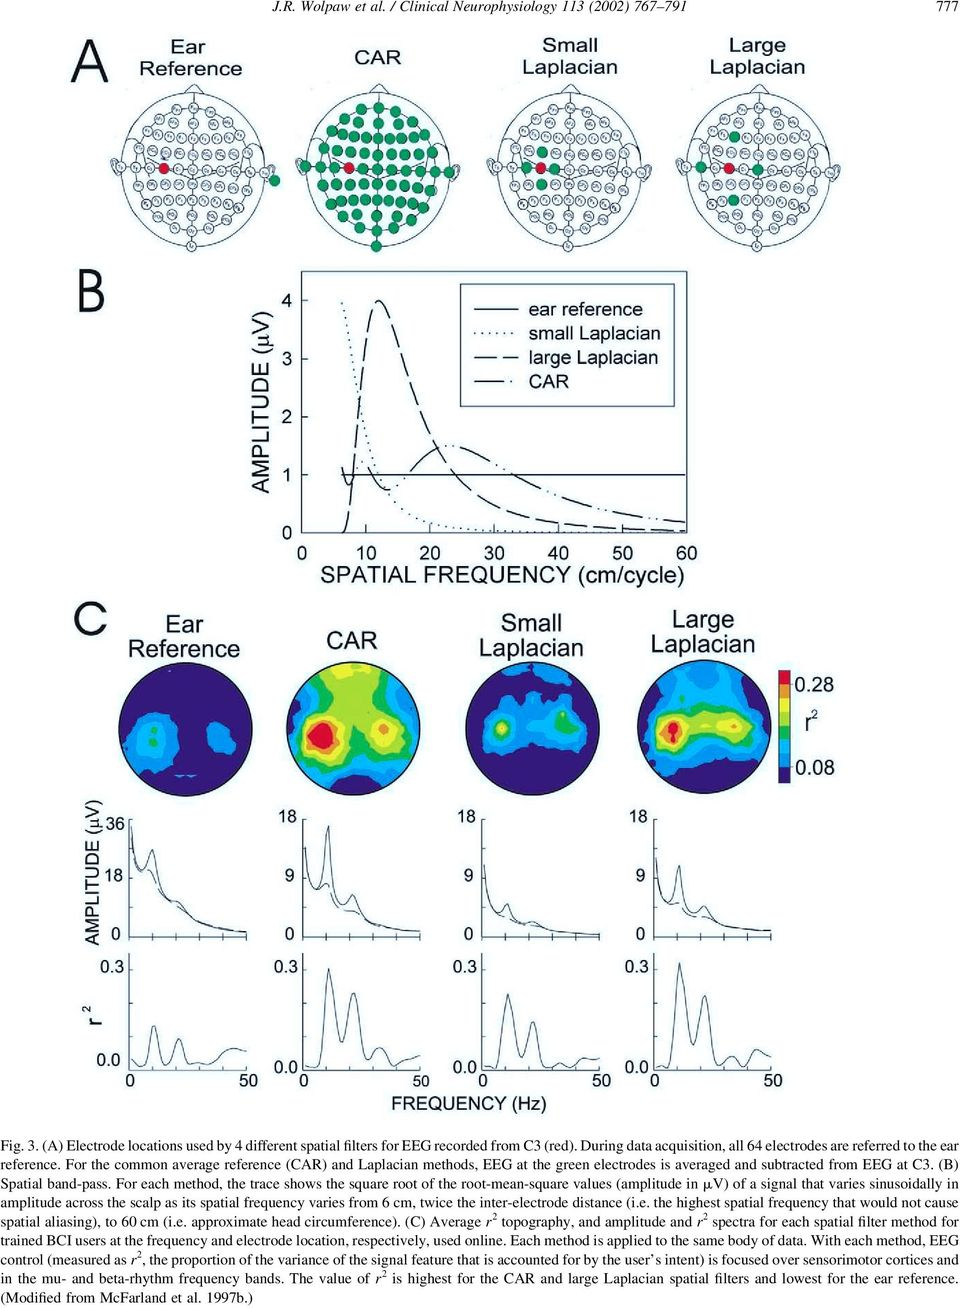 For the common average reference (CAR) and Laplacian methods, EEG at the green electrodes is averaged and subtracted from EEG at C3. (B) Spatial band-pass.